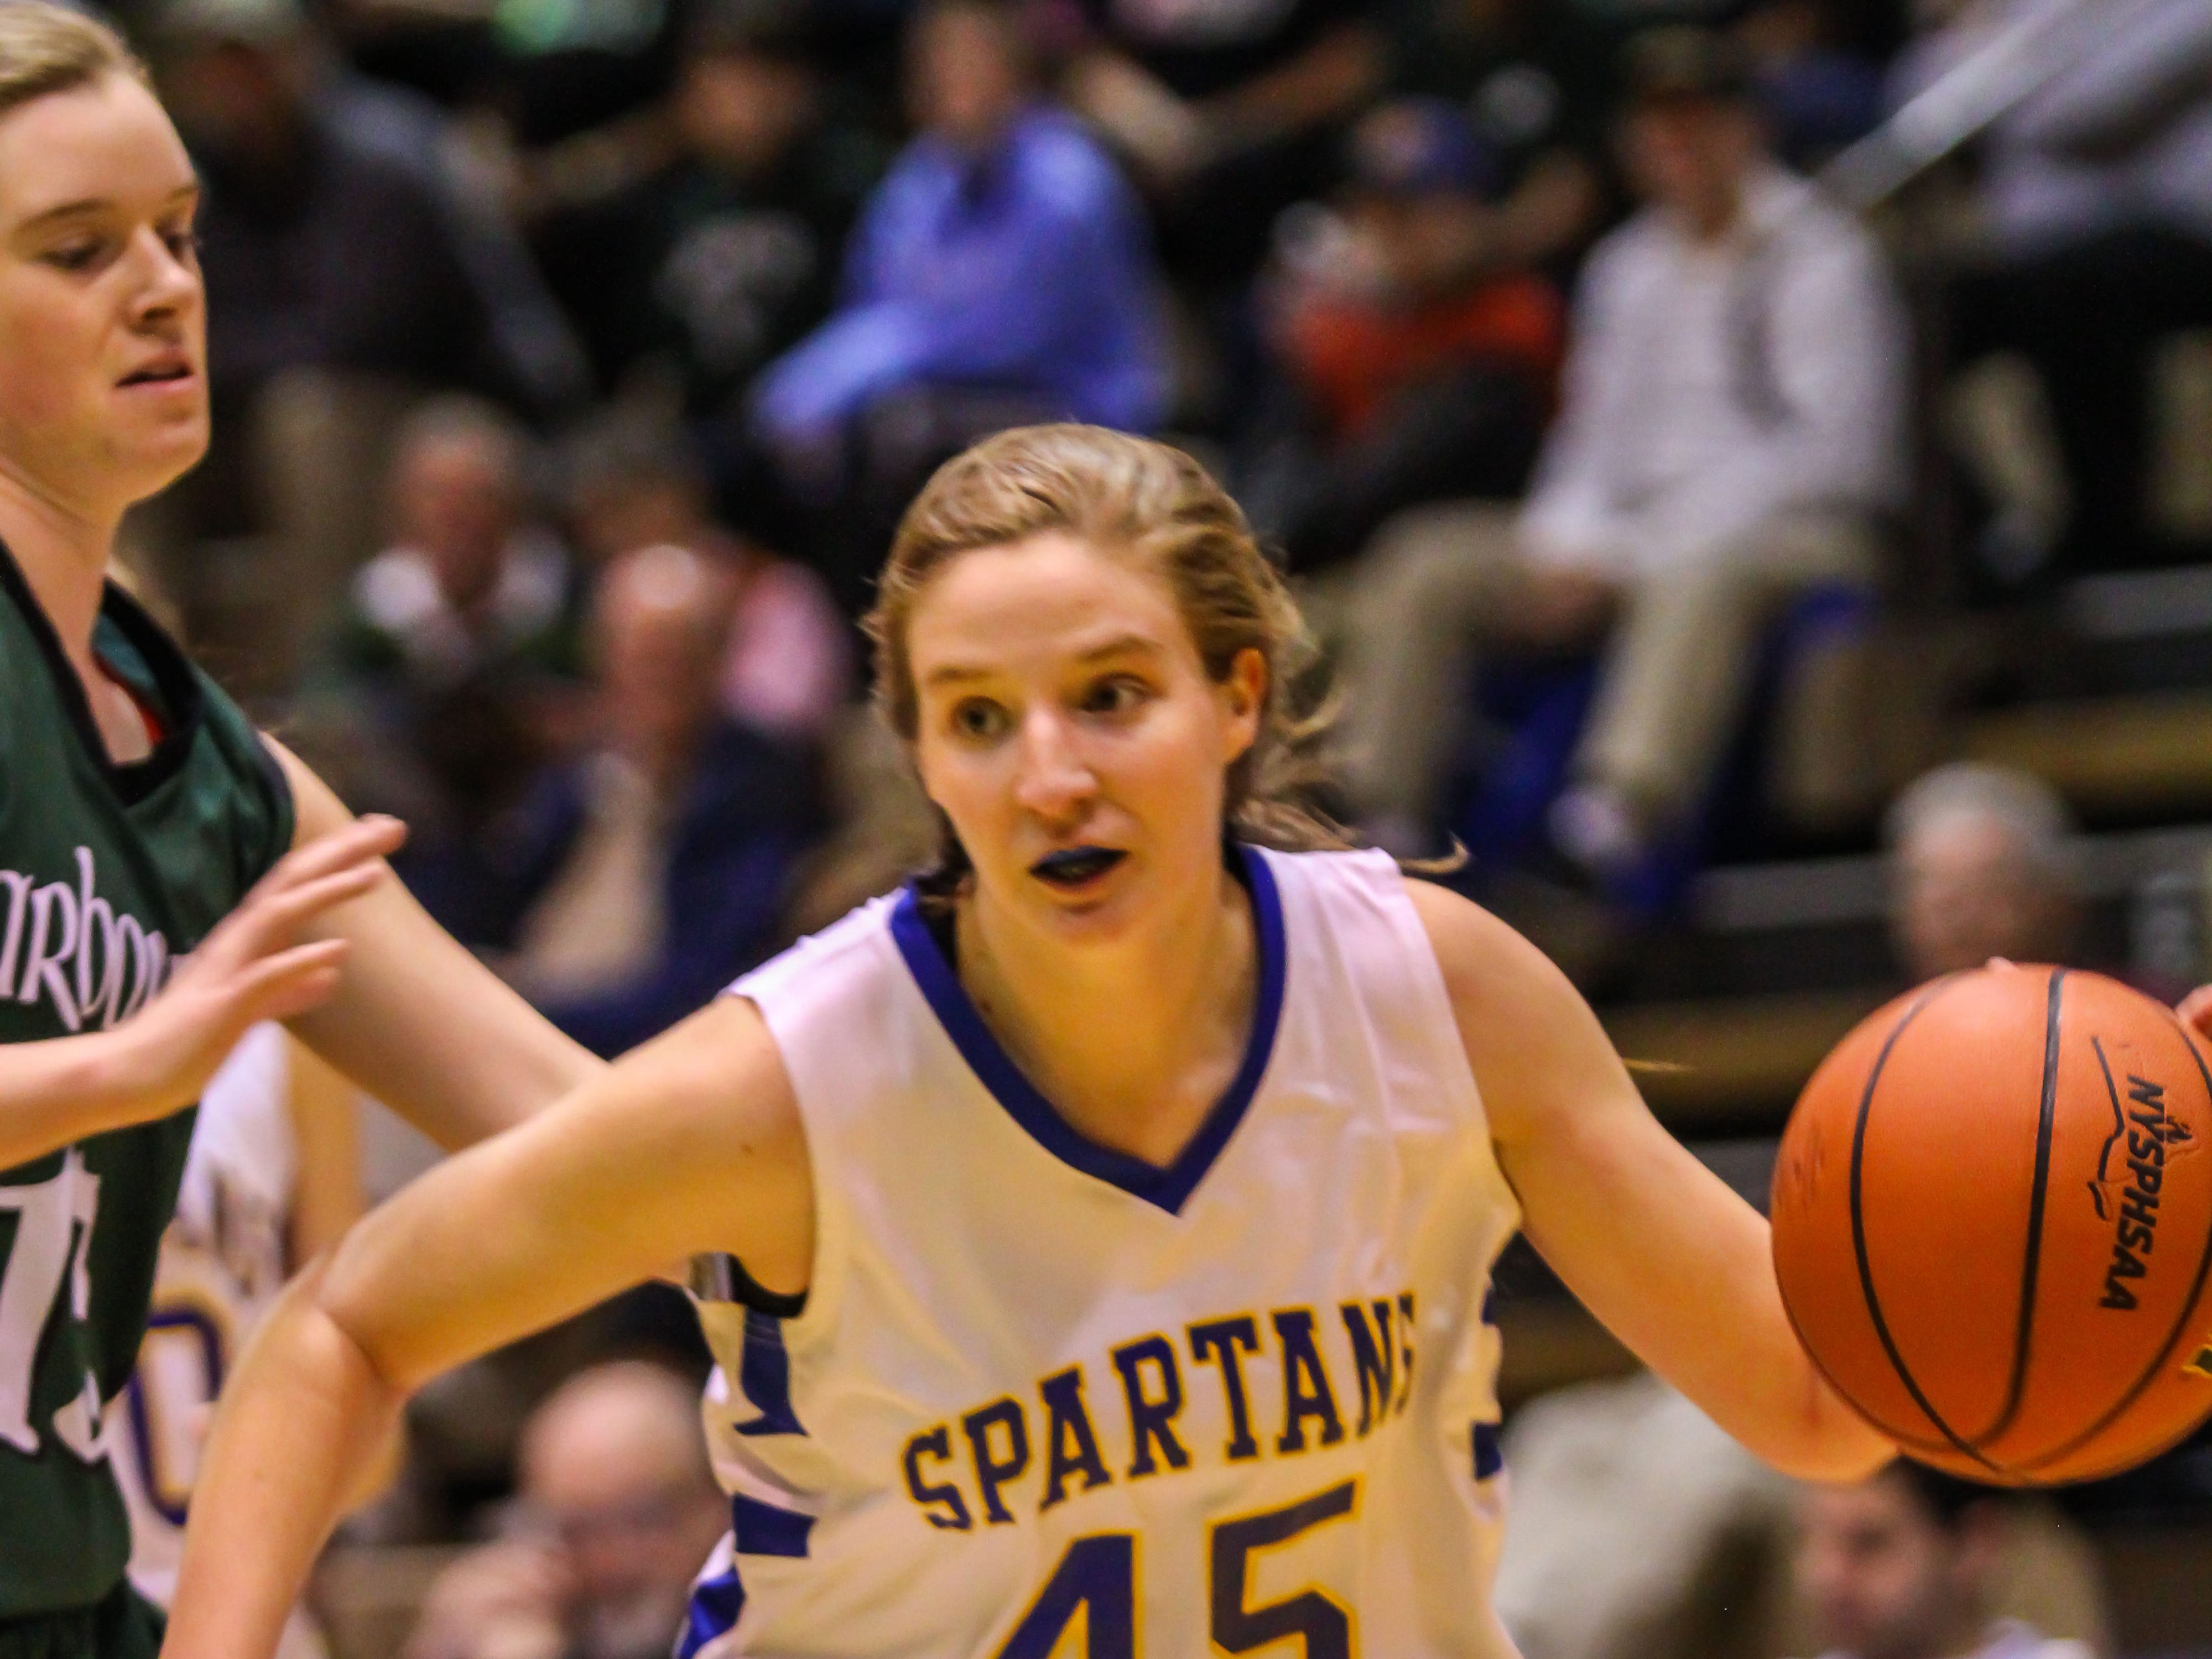 2013: Becca Dewing drives to the basket during Maine-Endwell's 53-46 victory over Harborfields in the Class A state semifinals Friday at Hudson Valley Community College. Dewing equaled a team-high with 12 points.